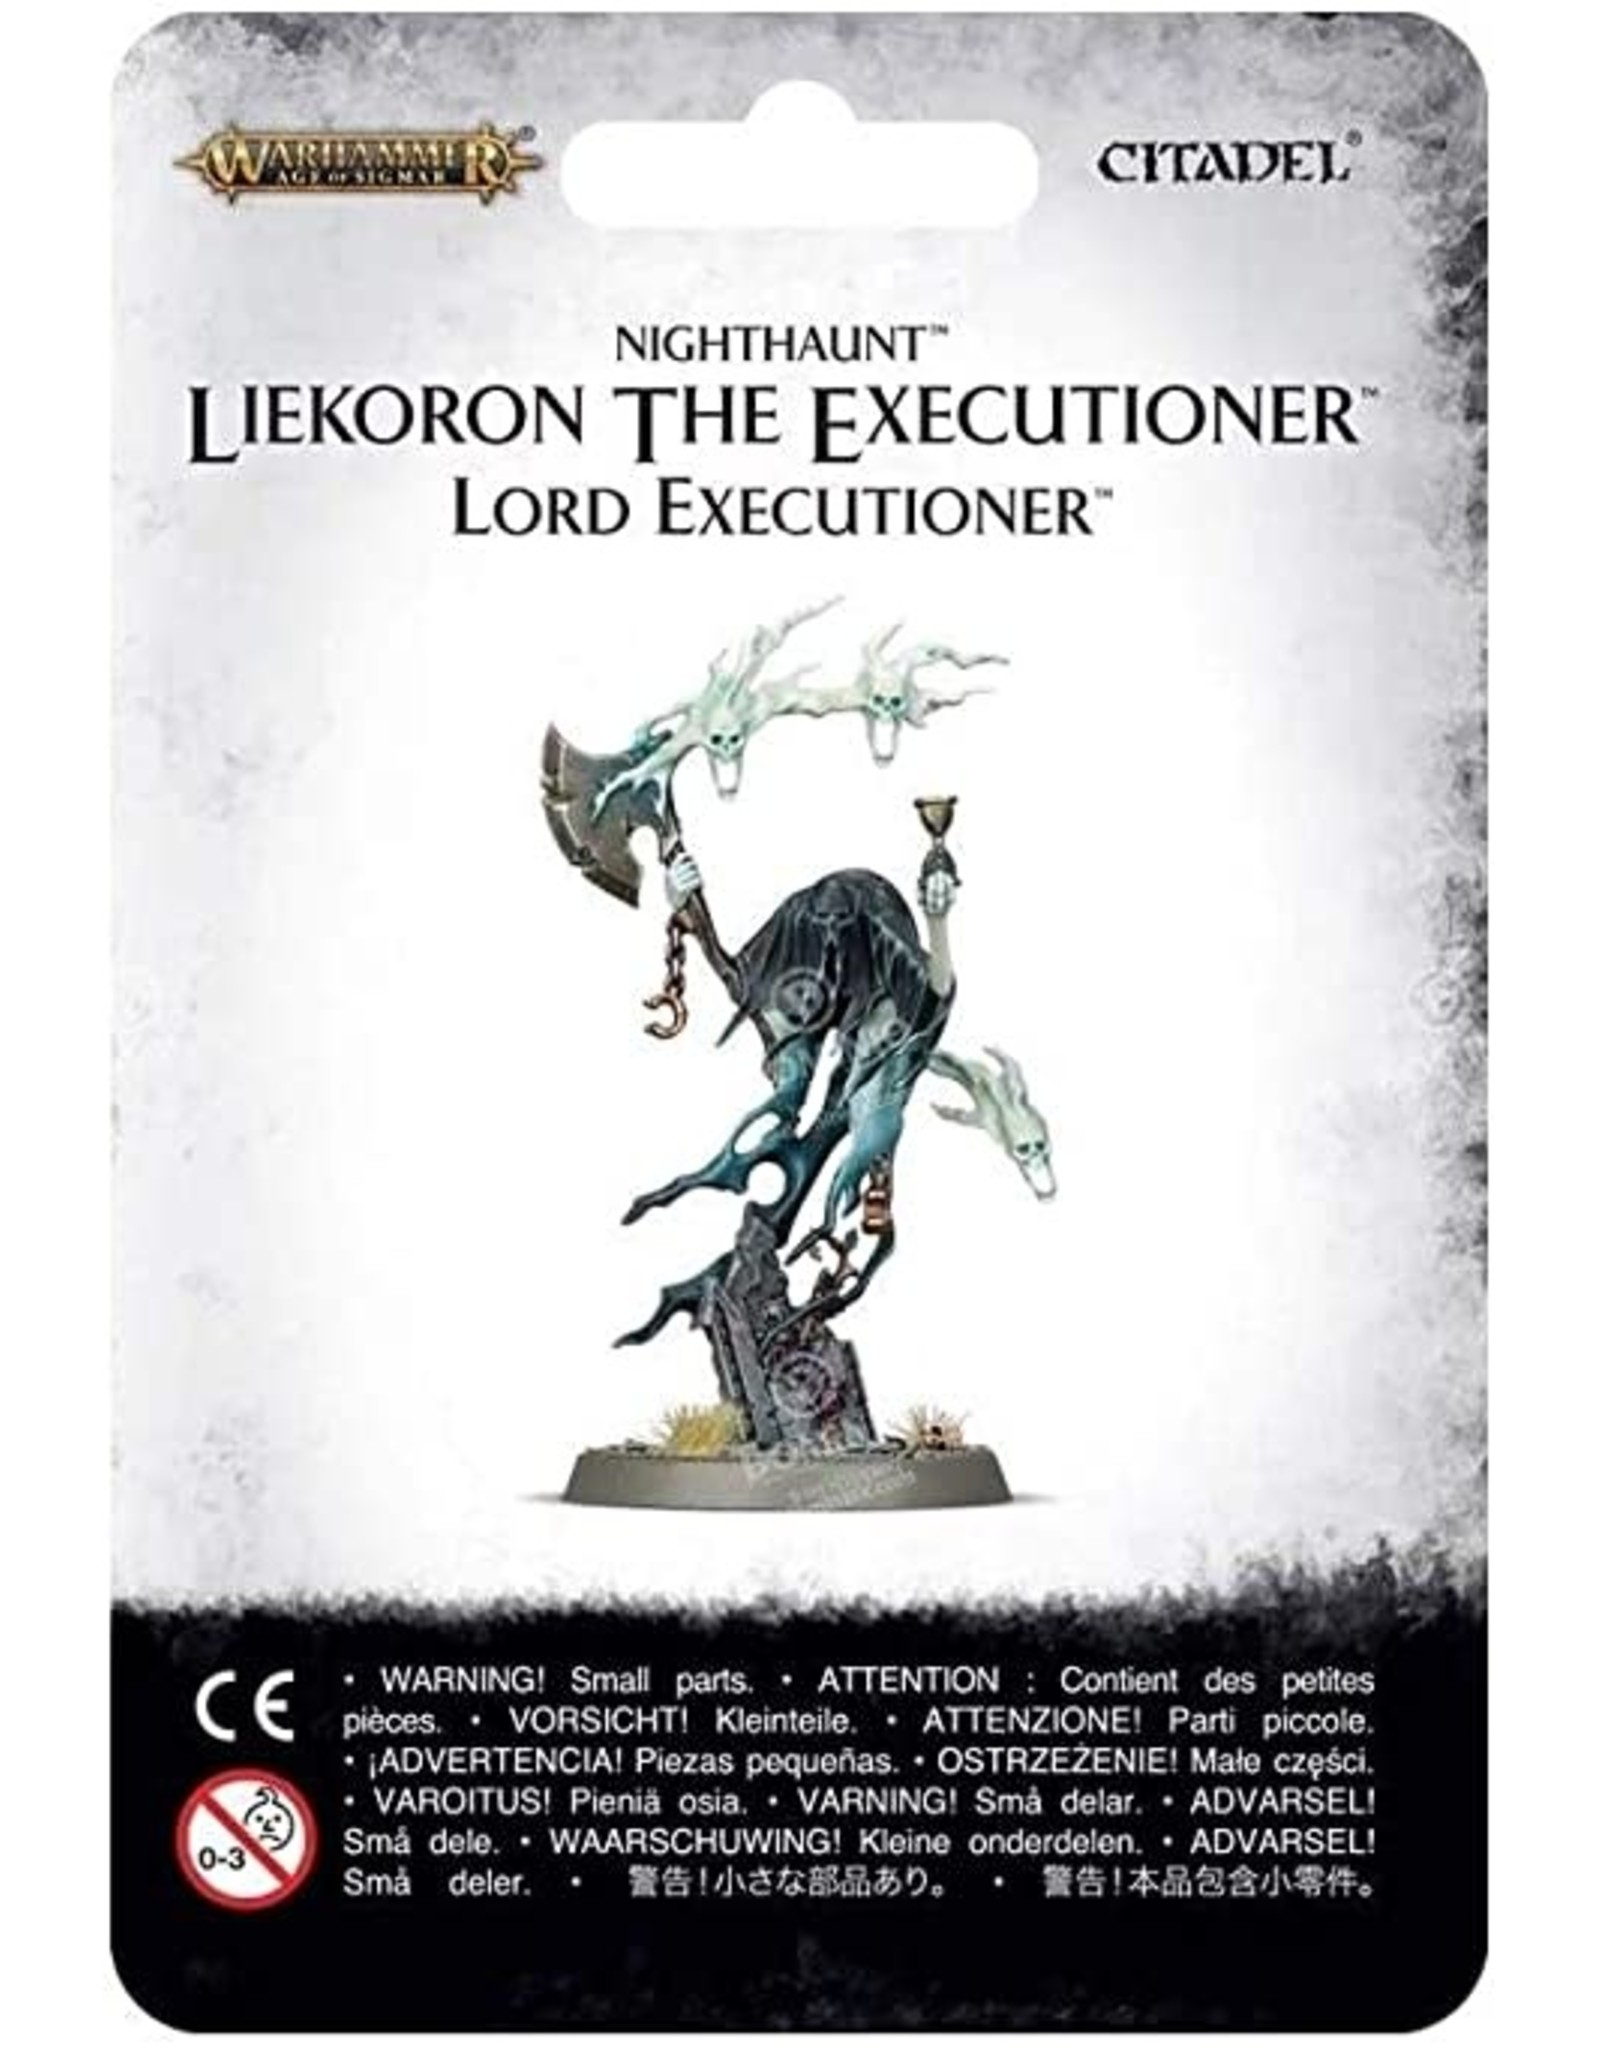 Nighthaunt Liekoron the Executioner (AOS)